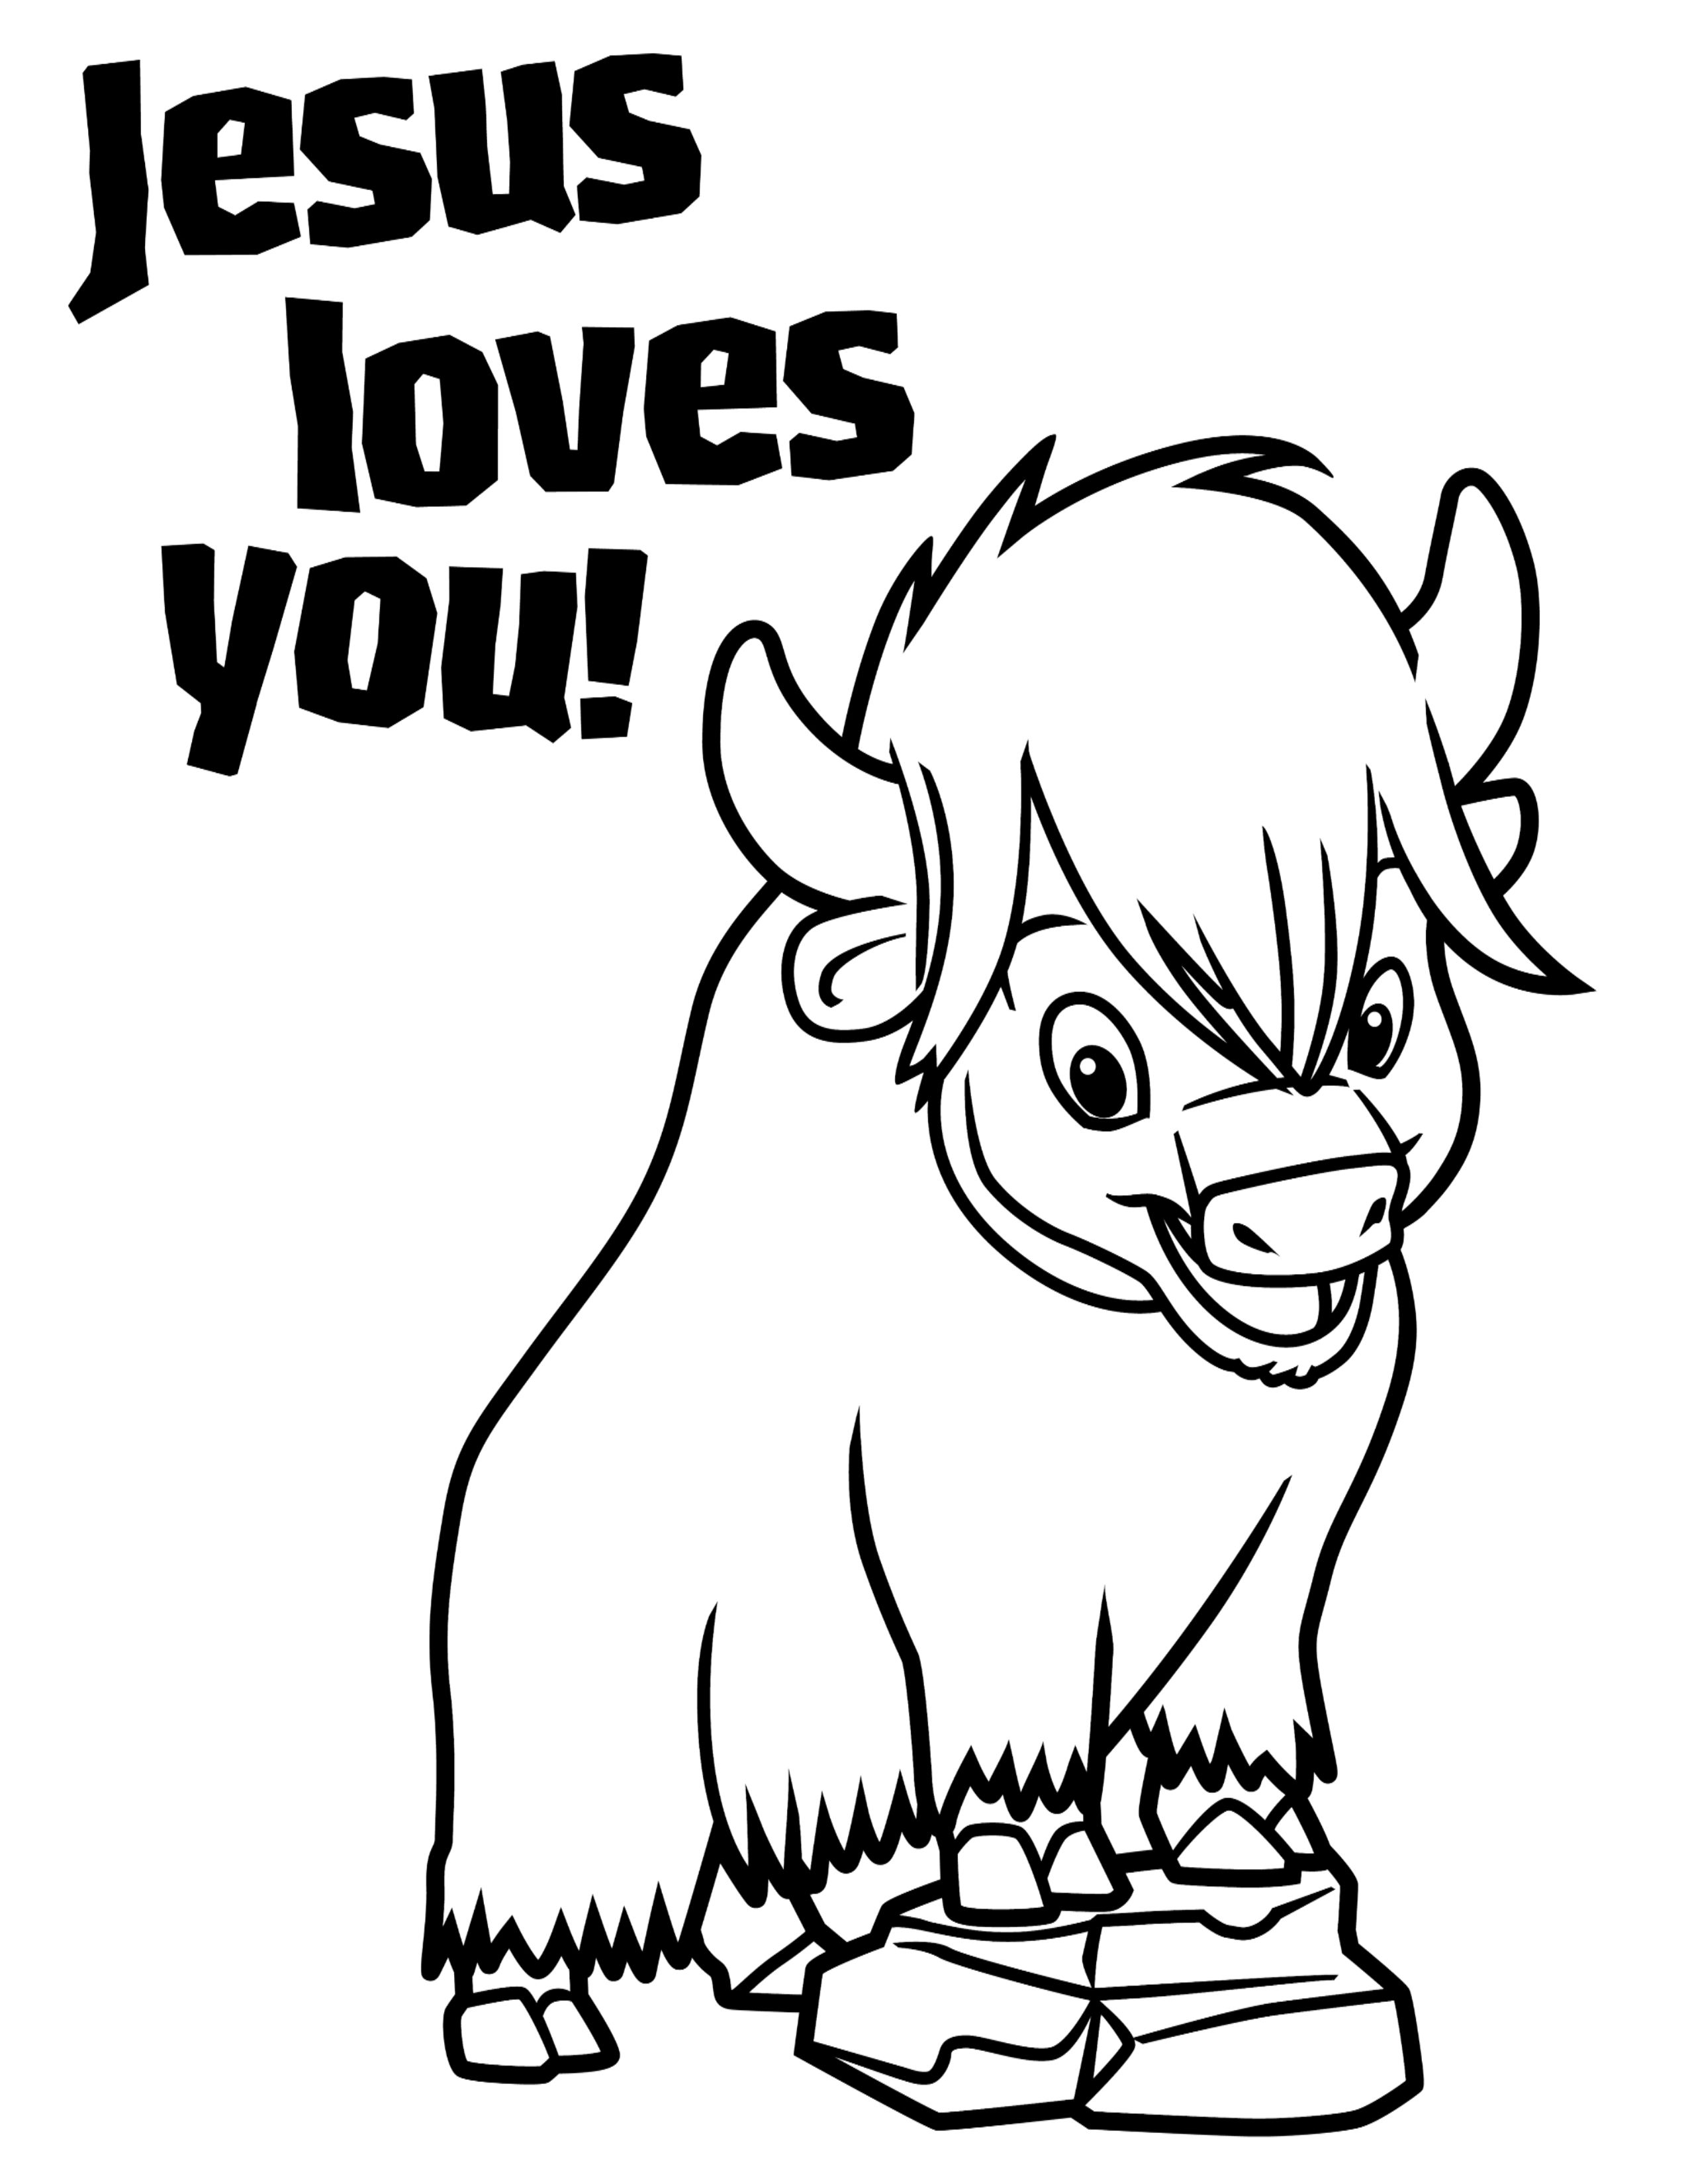 Preschool Coloring Page Jesus Loves You Zak Everest Vbs 2015